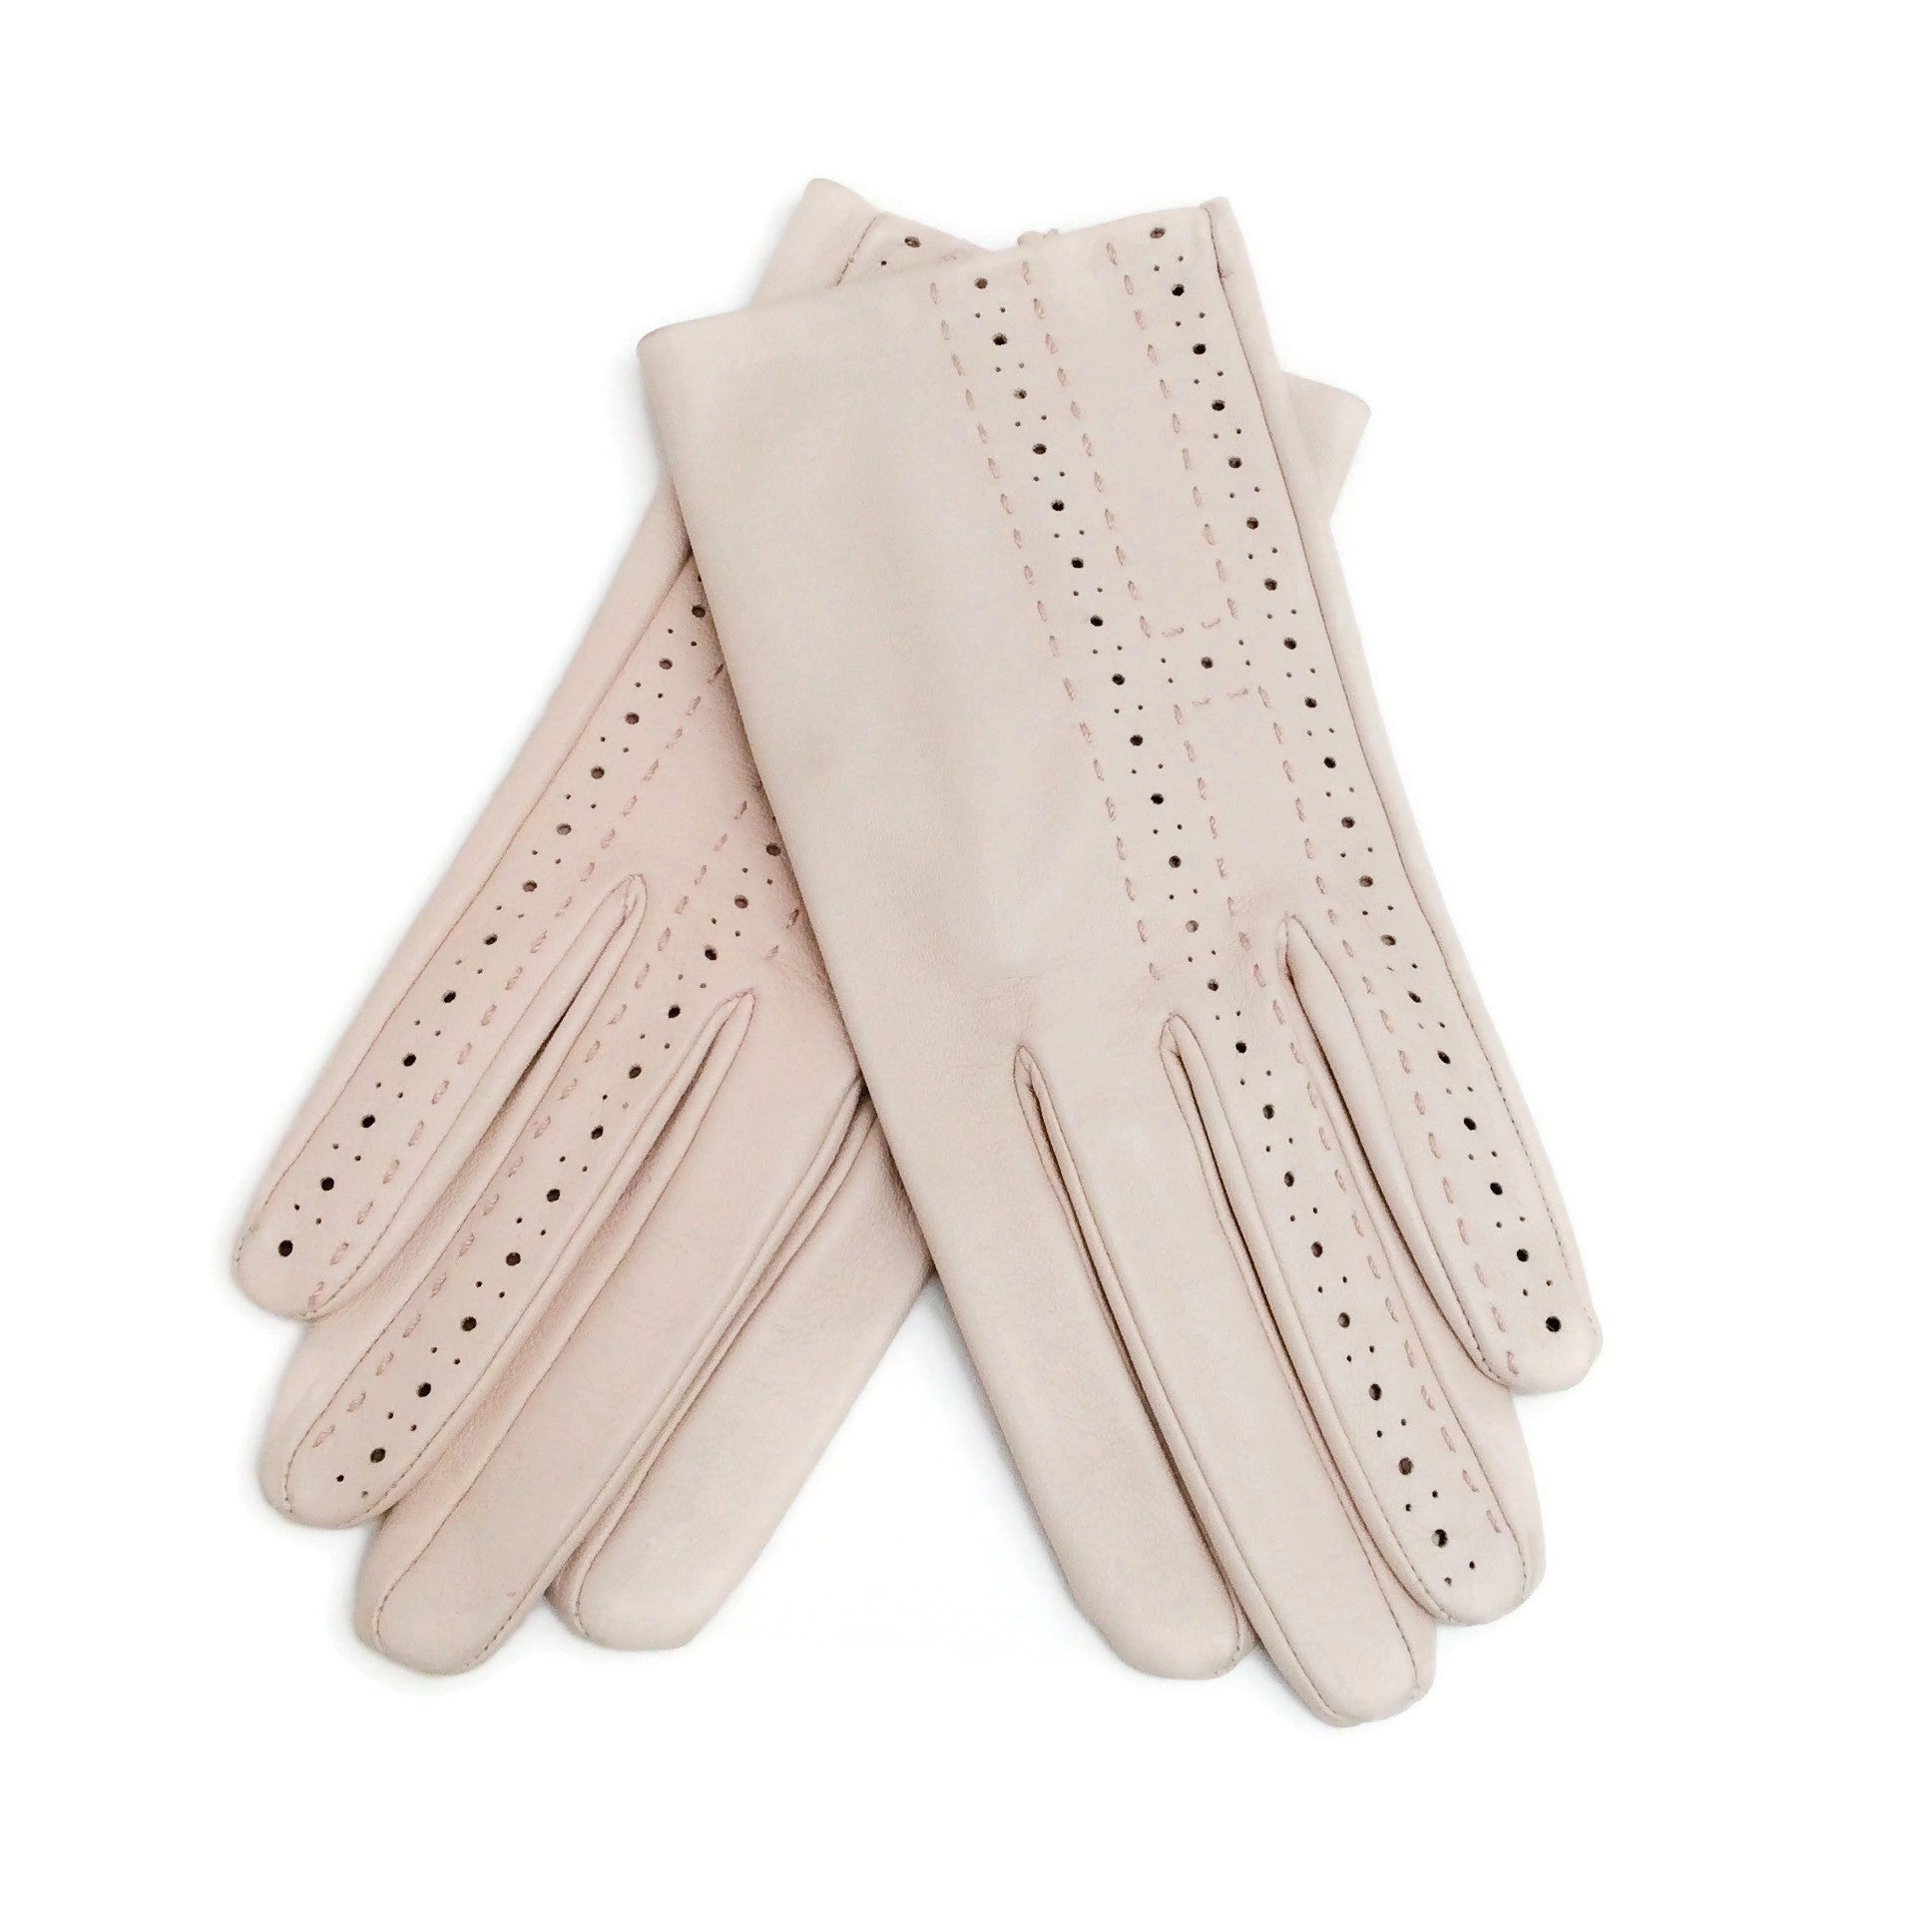 Hermès Blush Leather Perforated Gloves